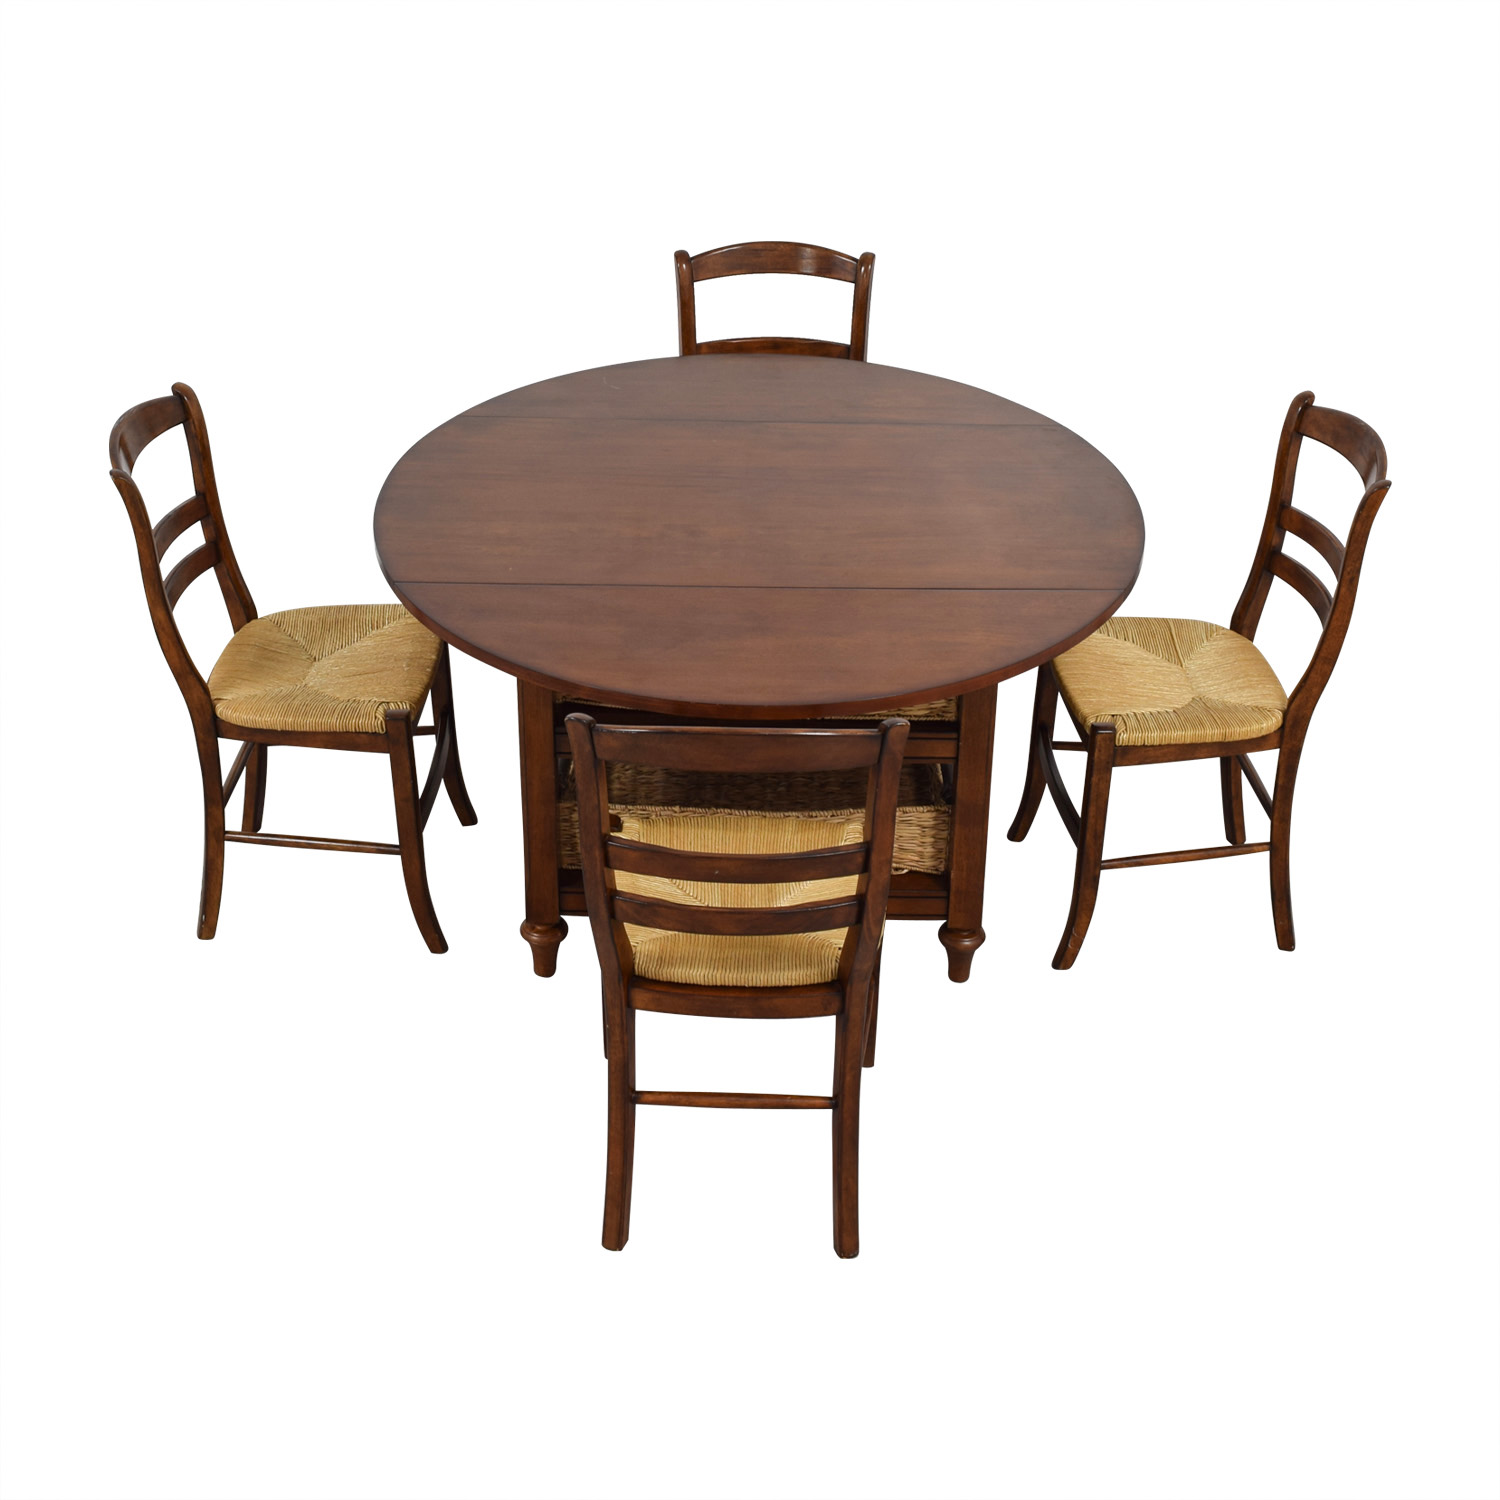 Pottery Barn Shayne Drop Leaf Dining Set with Storage Baskets Pottery Barn